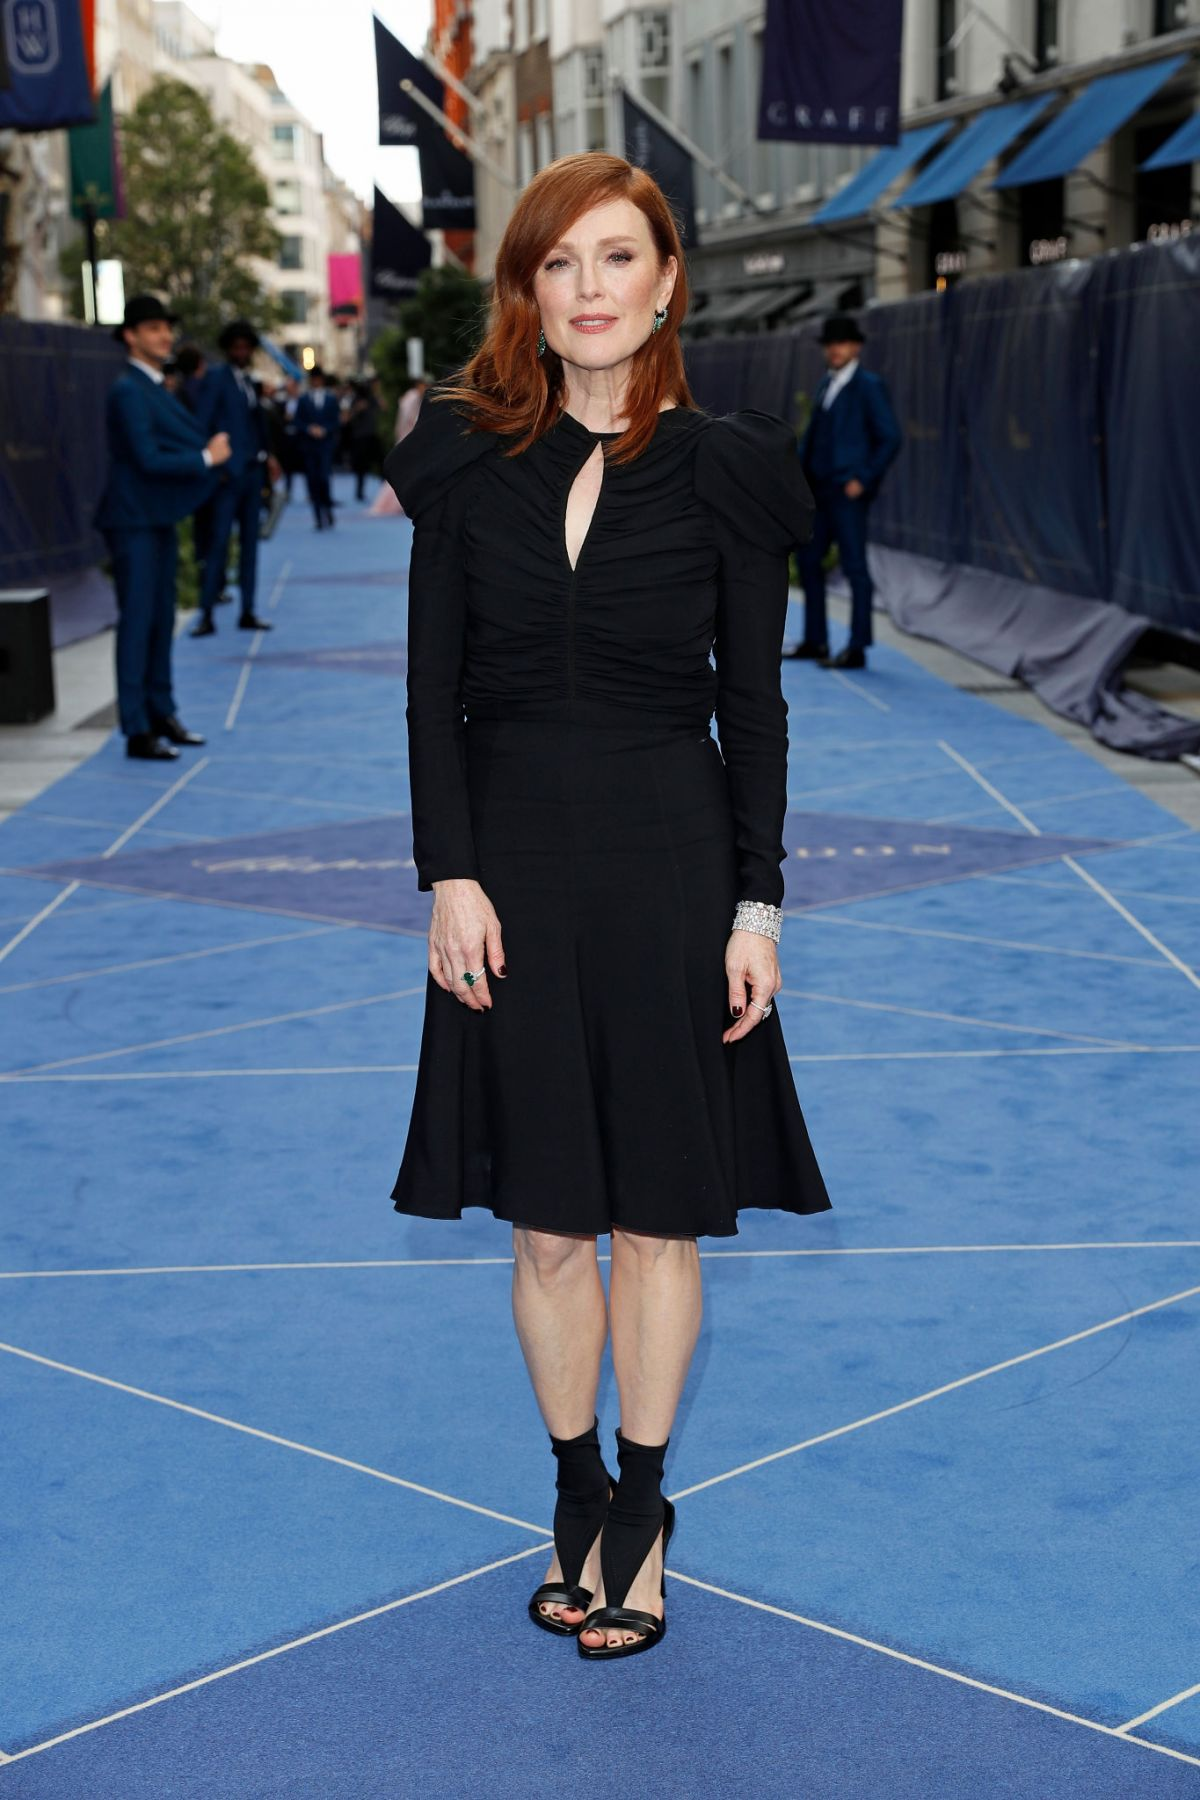 Julianne Moore At Chopard Bond Street Boutique Reopening